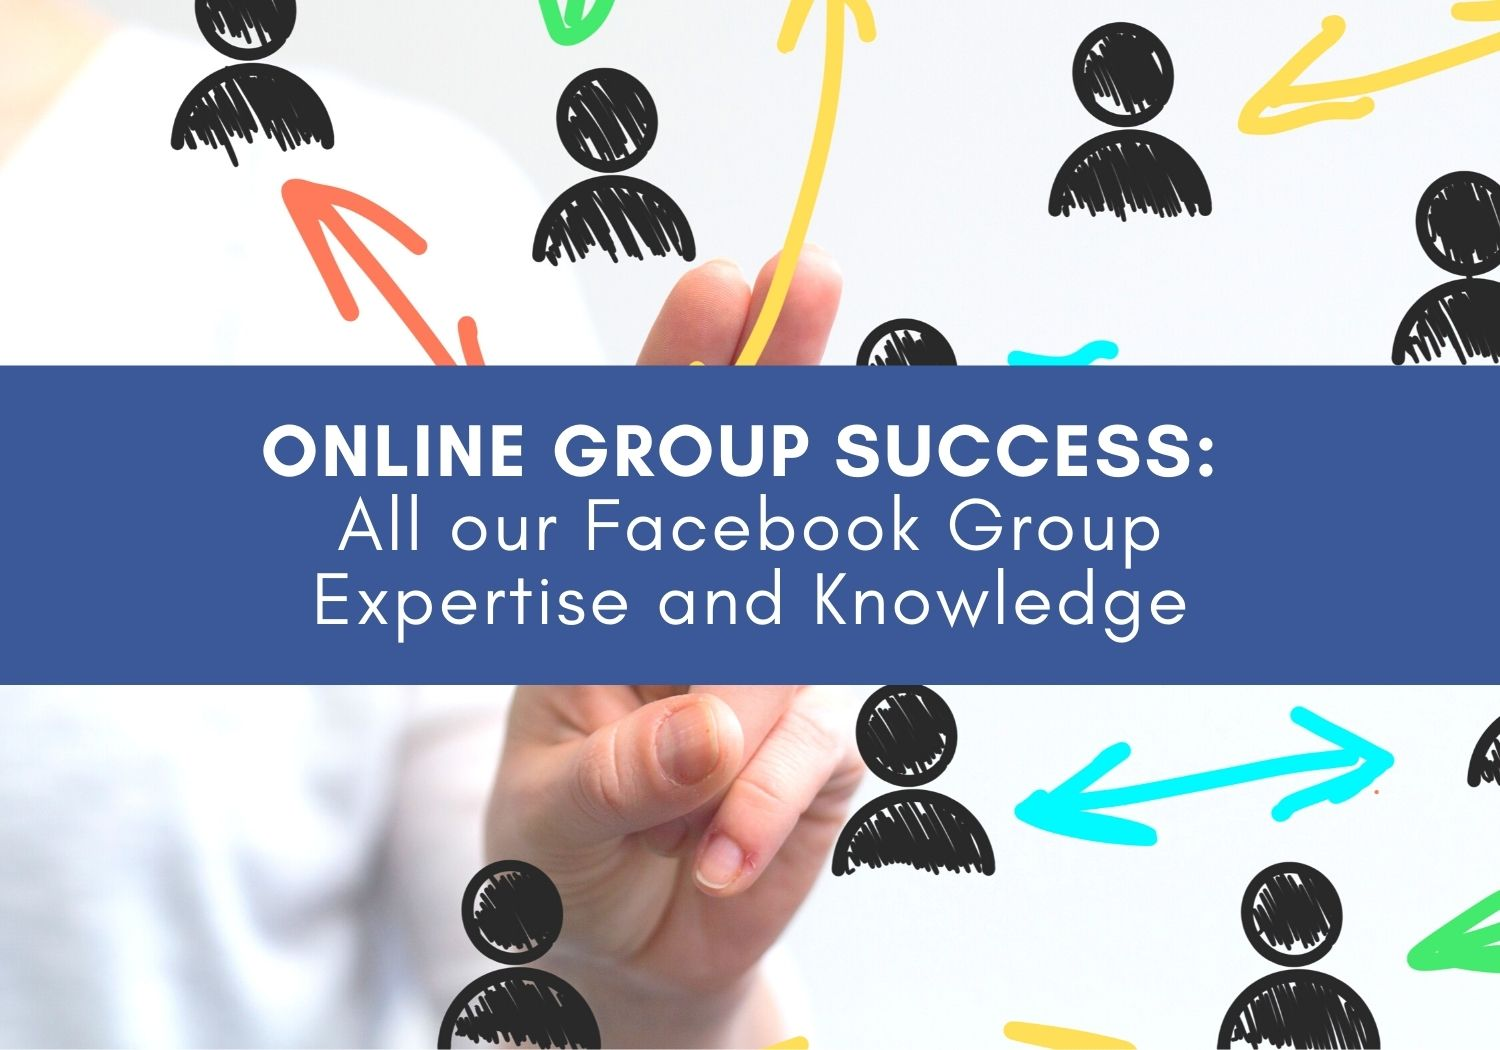 Facebook group expertise and secrets